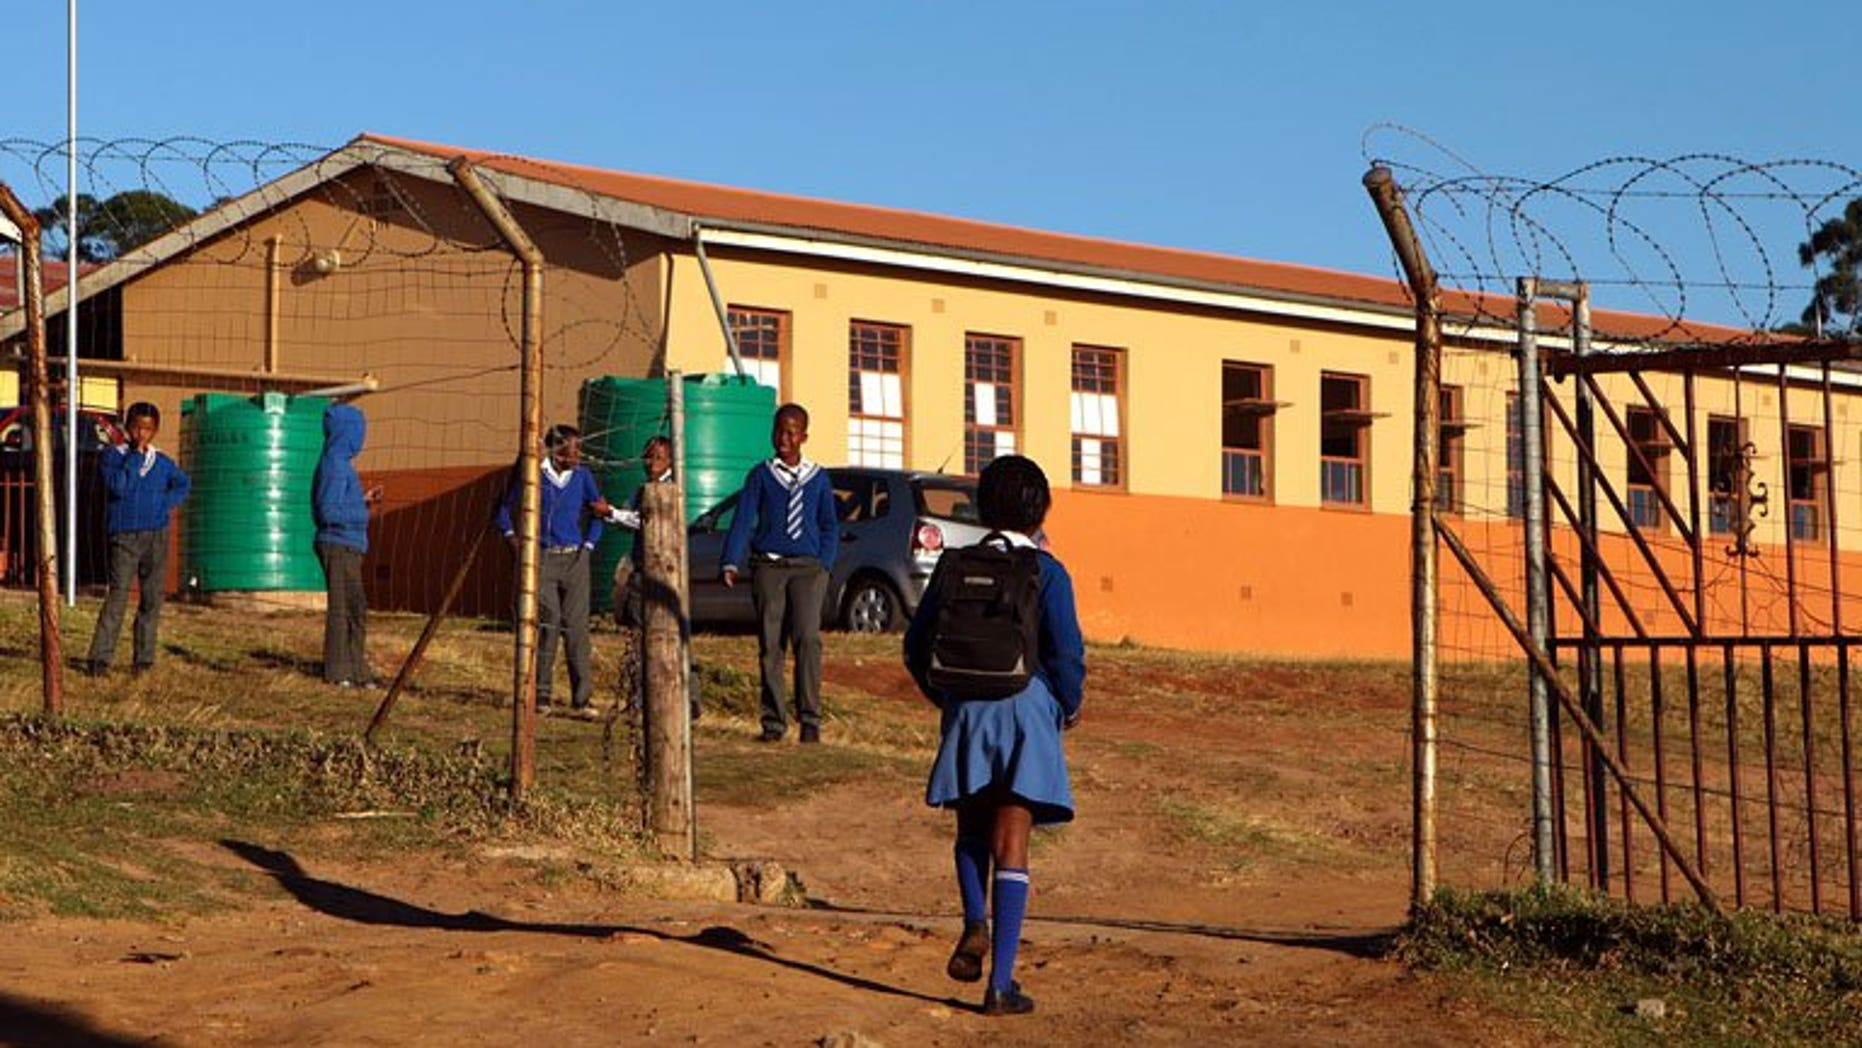 Children arrive at a South African village school on June 14. South African police conducting a nationwide sweep arrested six men suspected of producing and distributing child pornography as part of a global crime ring, a spokesman said Wednesday.